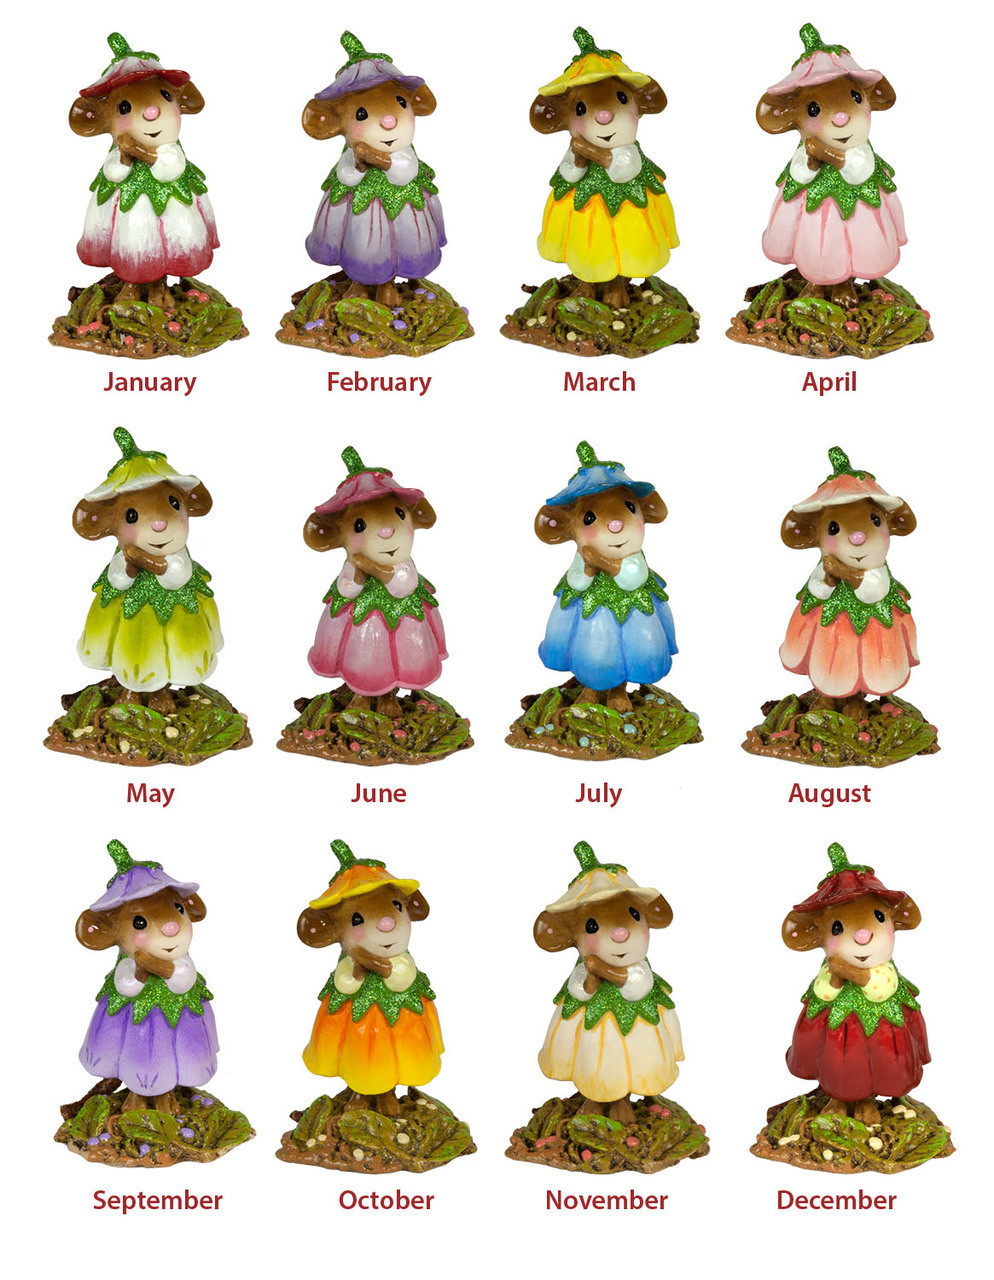 Wee Forest Folk February Flower Mouse Of The Month M-640b